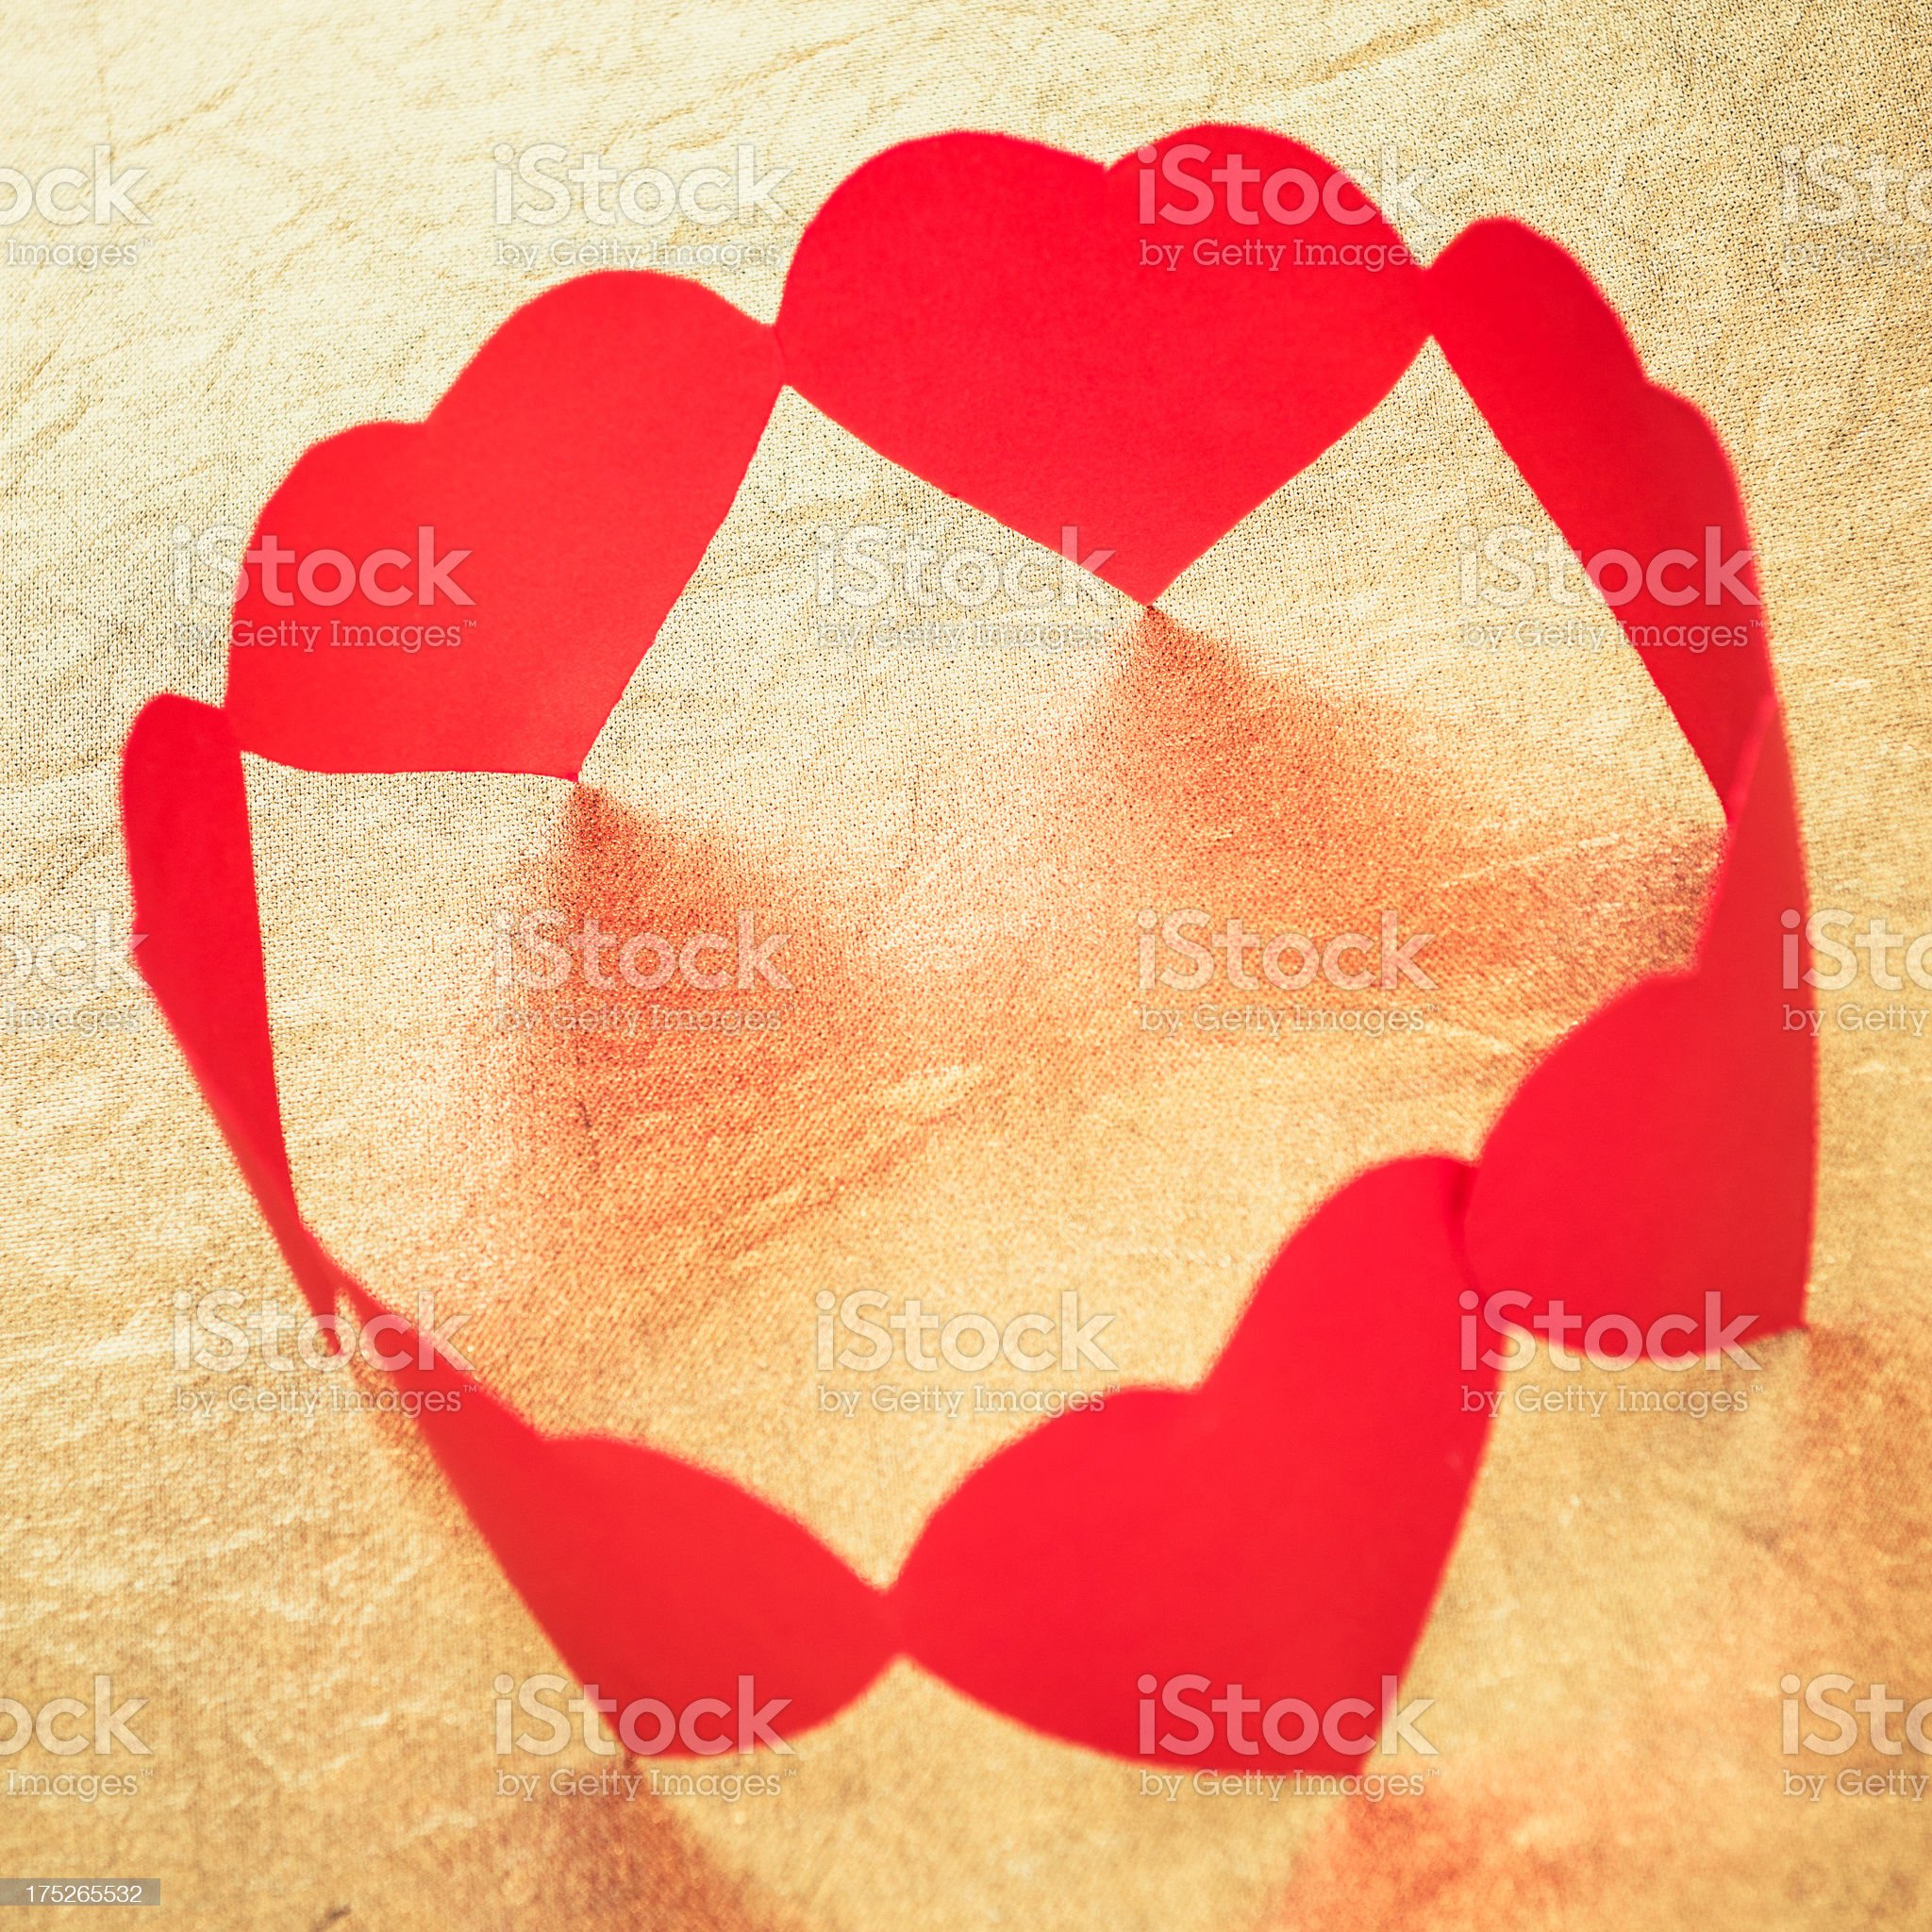 Heart shape paper dolls in circle - st valentine concept royalty-free stock photo